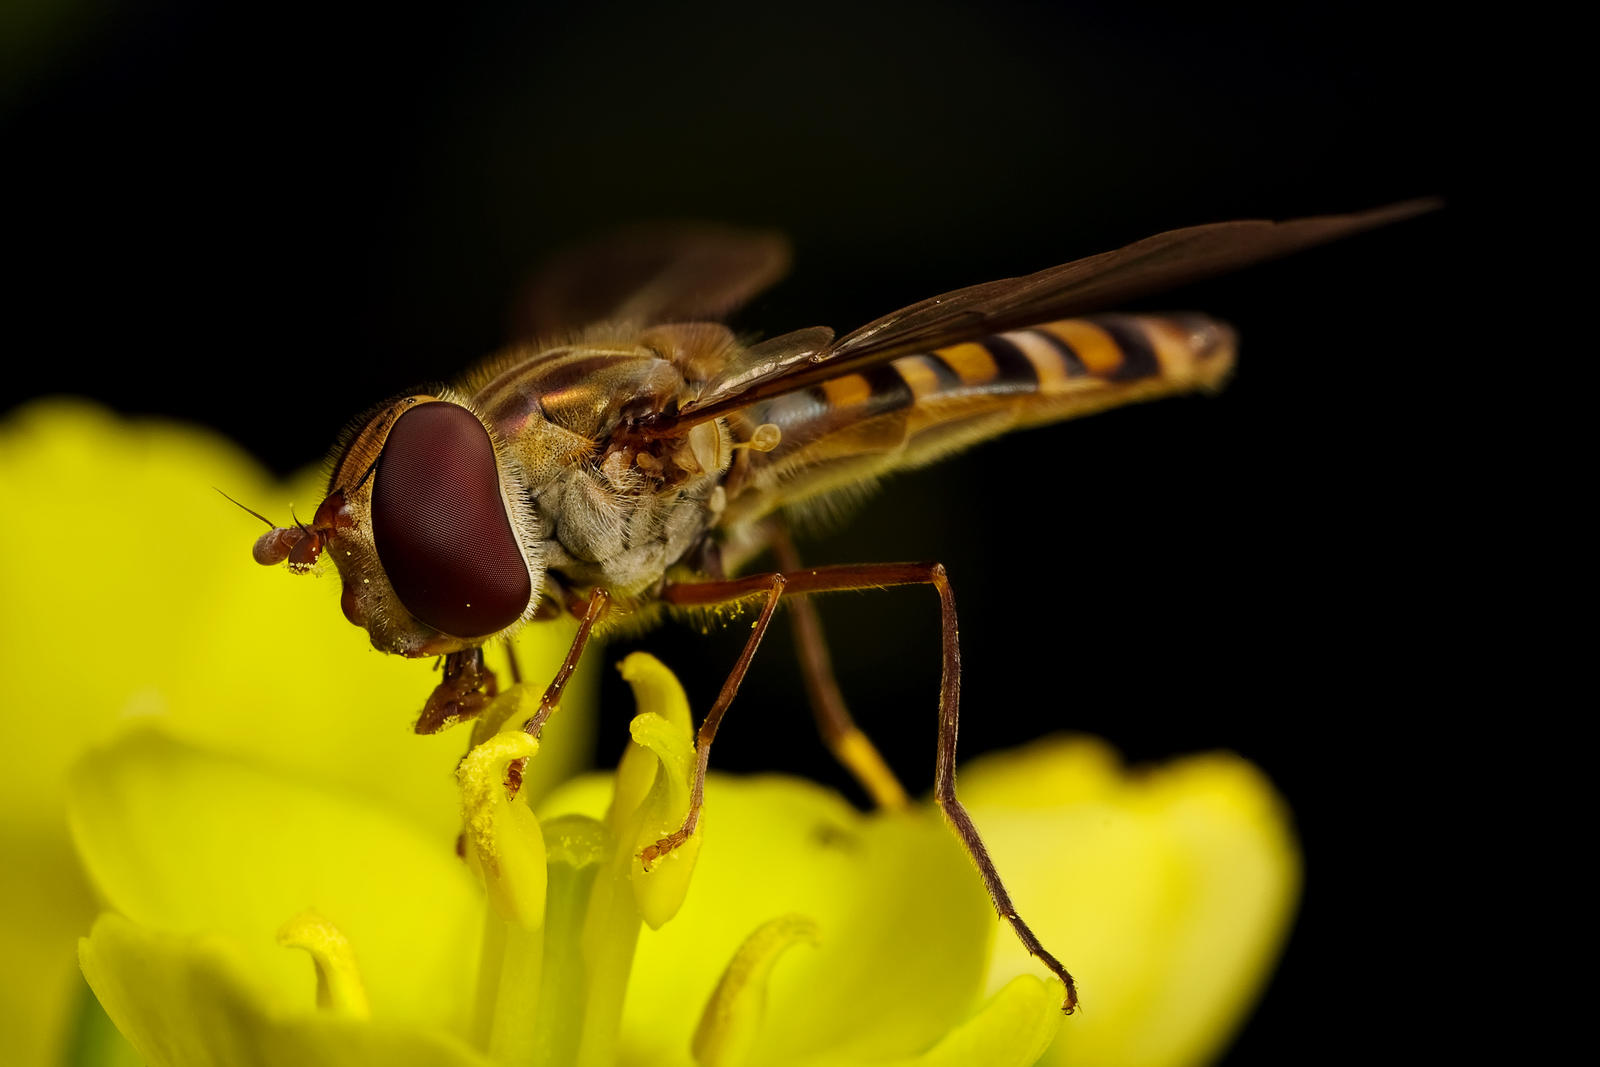 Winter Hoverfly by dalantech